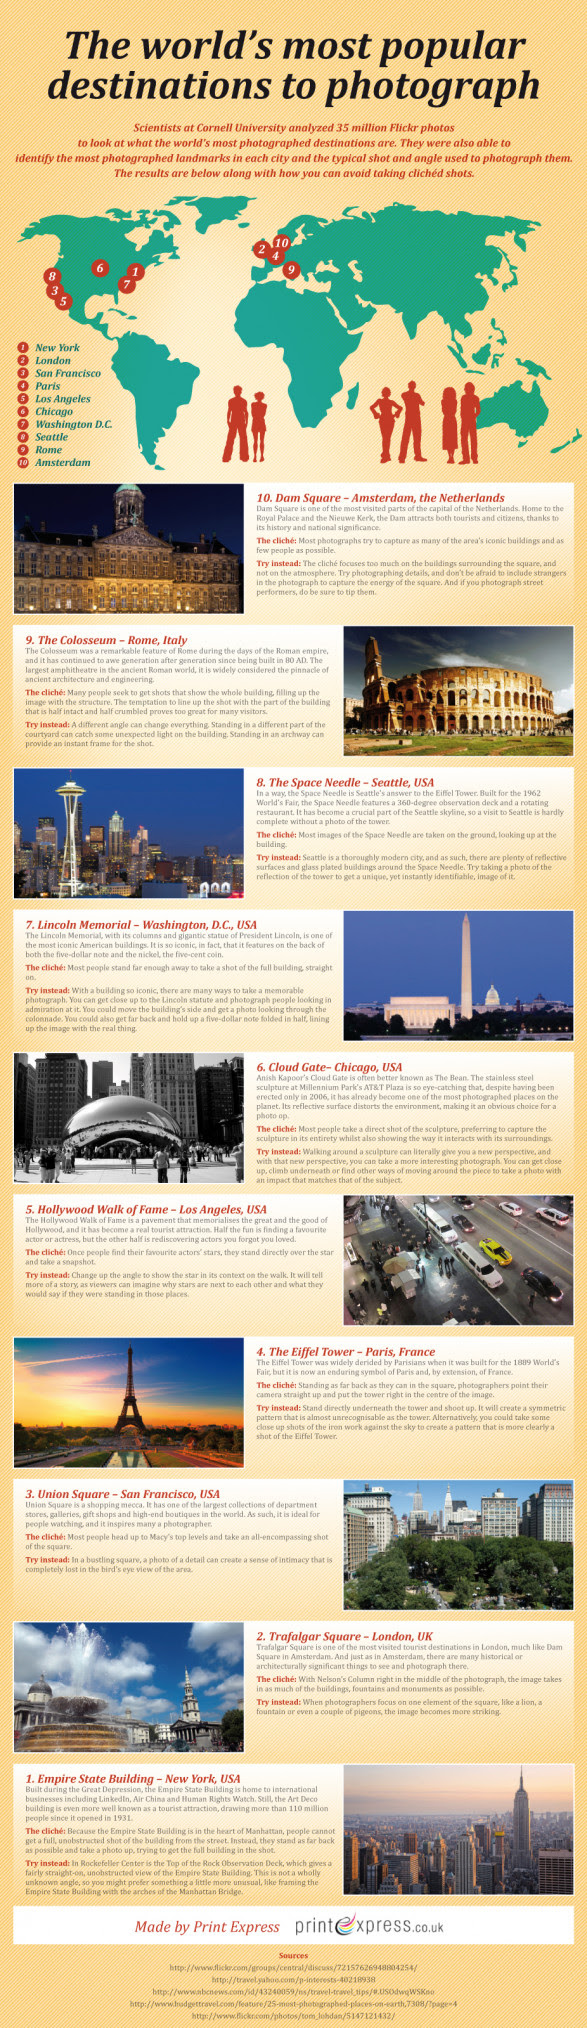 The Worlds Most Popular Destinations to Photography [Infographic] Scientifically picked by Cornell University from Flickr photos